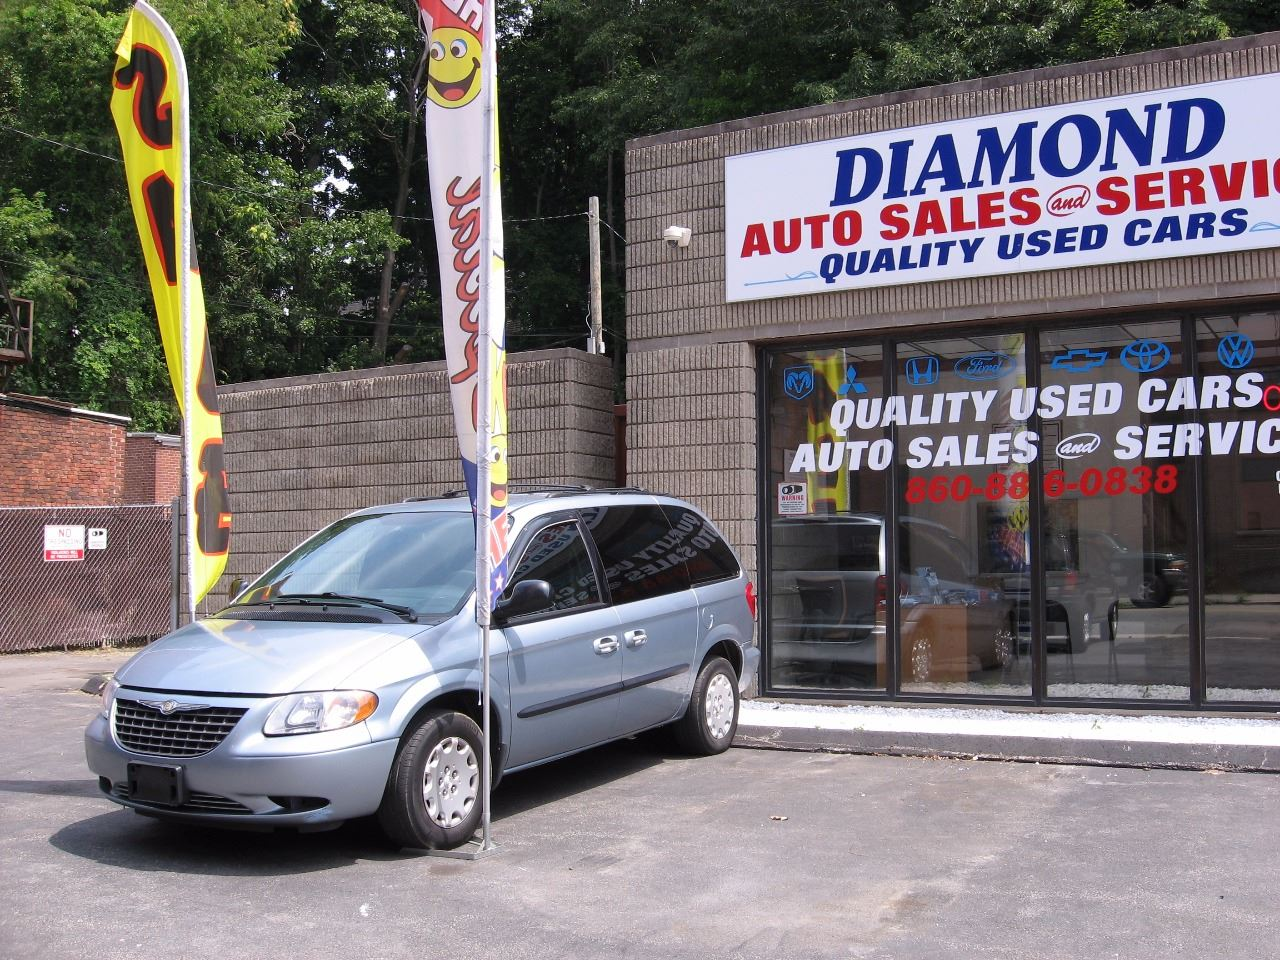 2004 Chrysler Town and Country for sale at Diamond Auto Sales & Service in Norwich CT